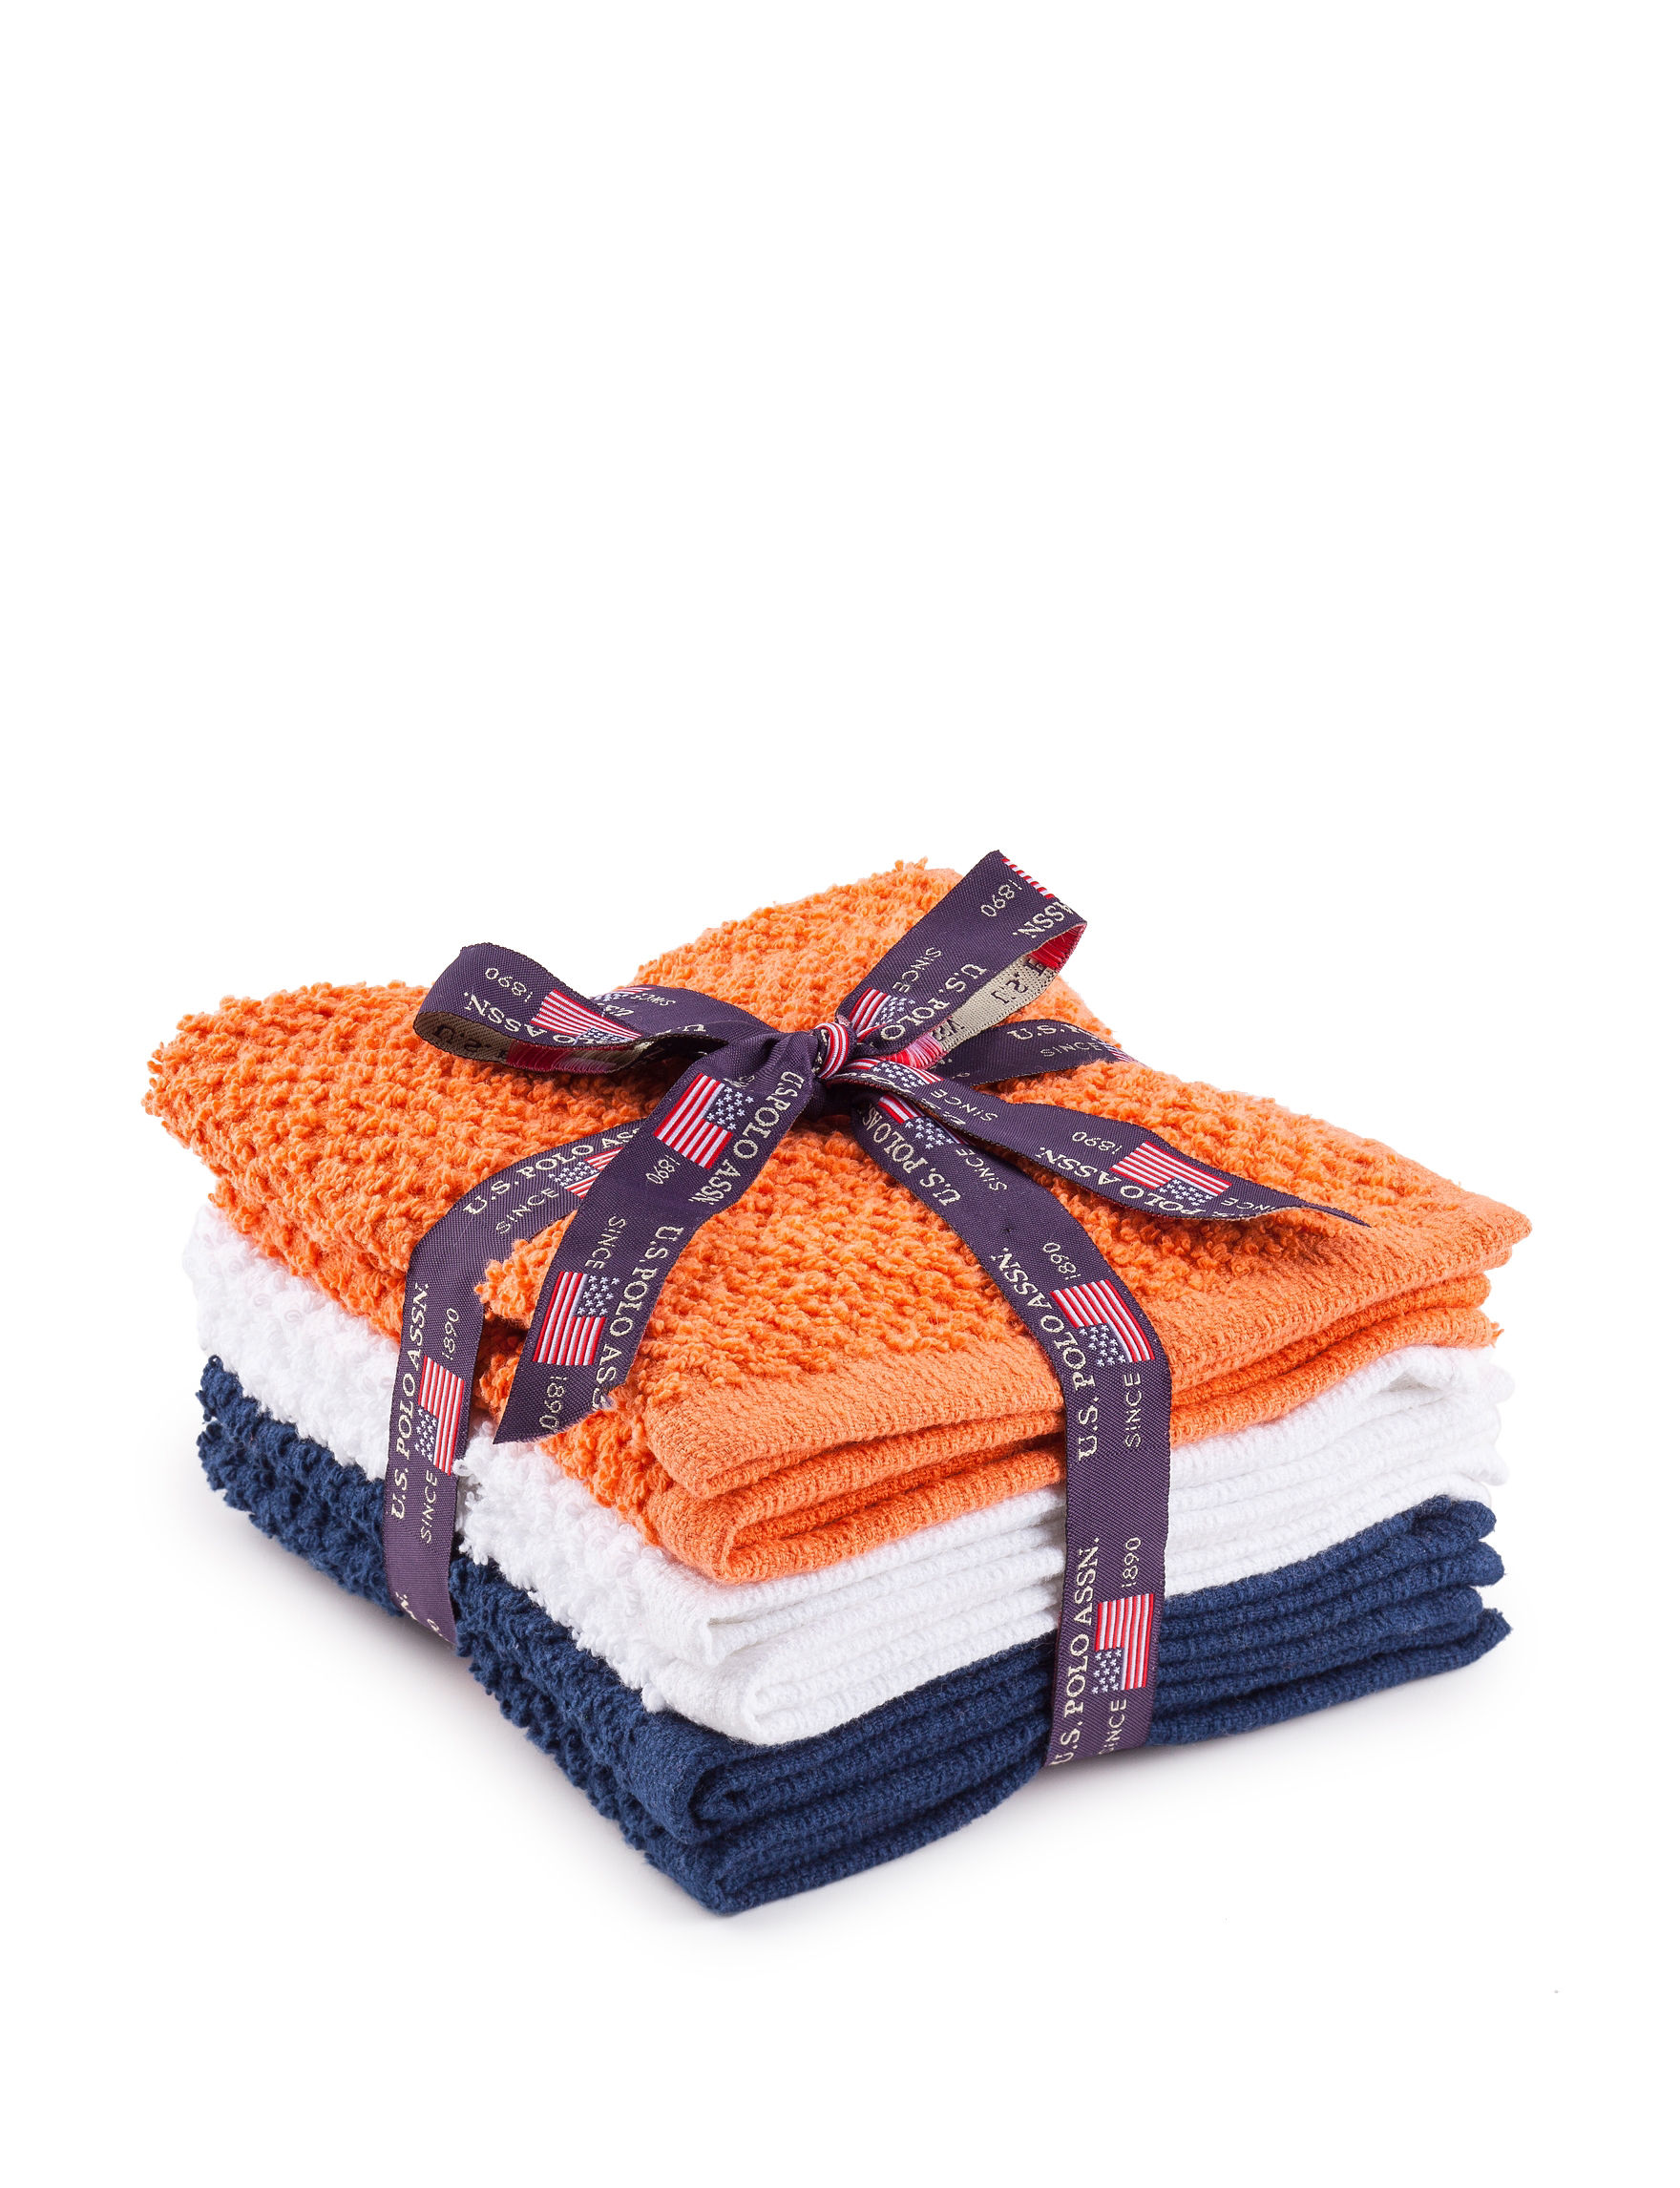 U.S. Polo Assn. Orange/ White/ Blue Hand Towels Towels